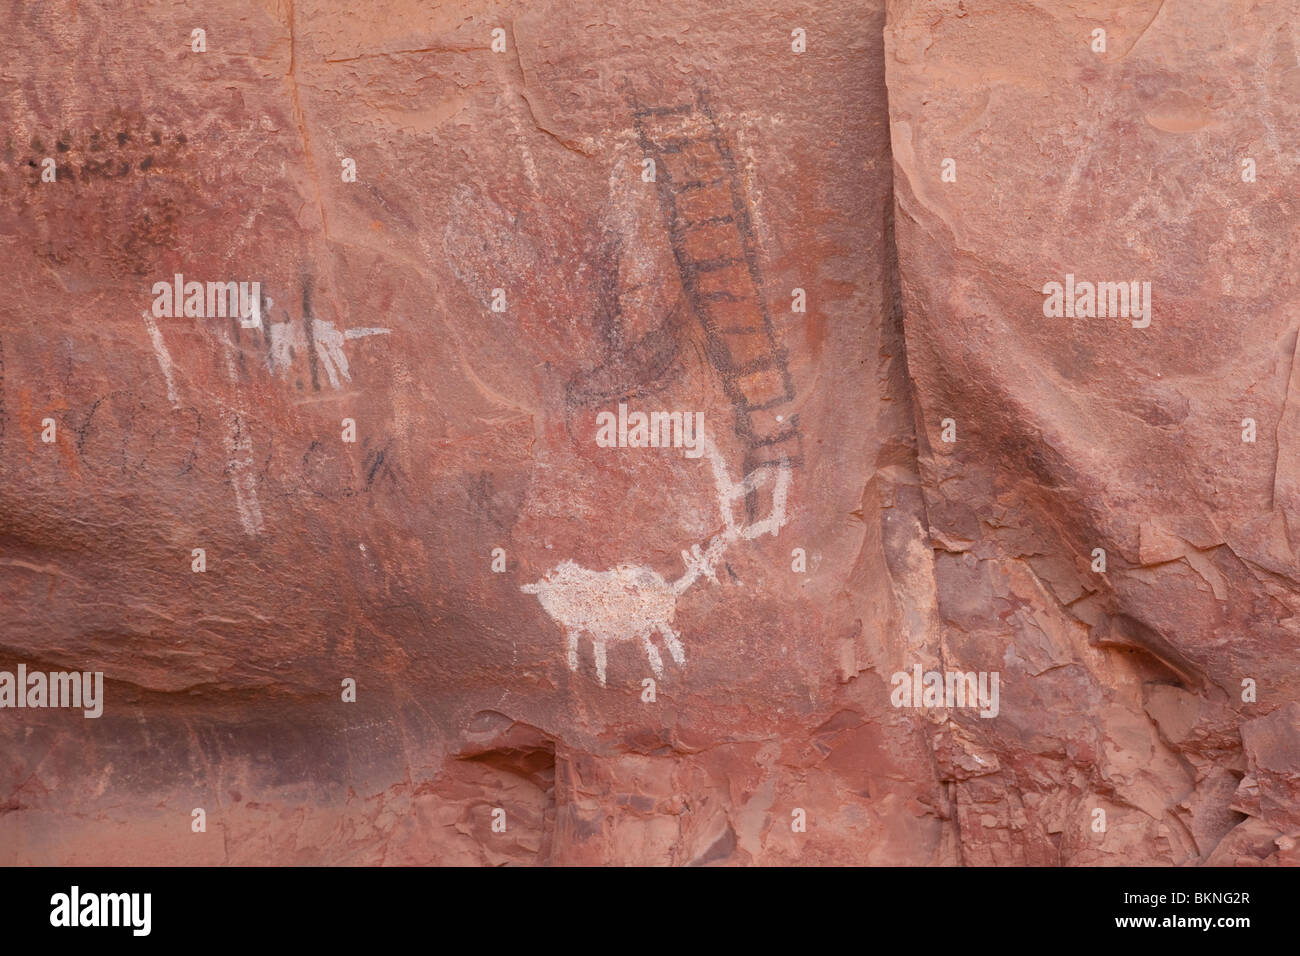 Palatki,Cliff,Dwelling,sedona,arizona,indian,usa Stock Photo